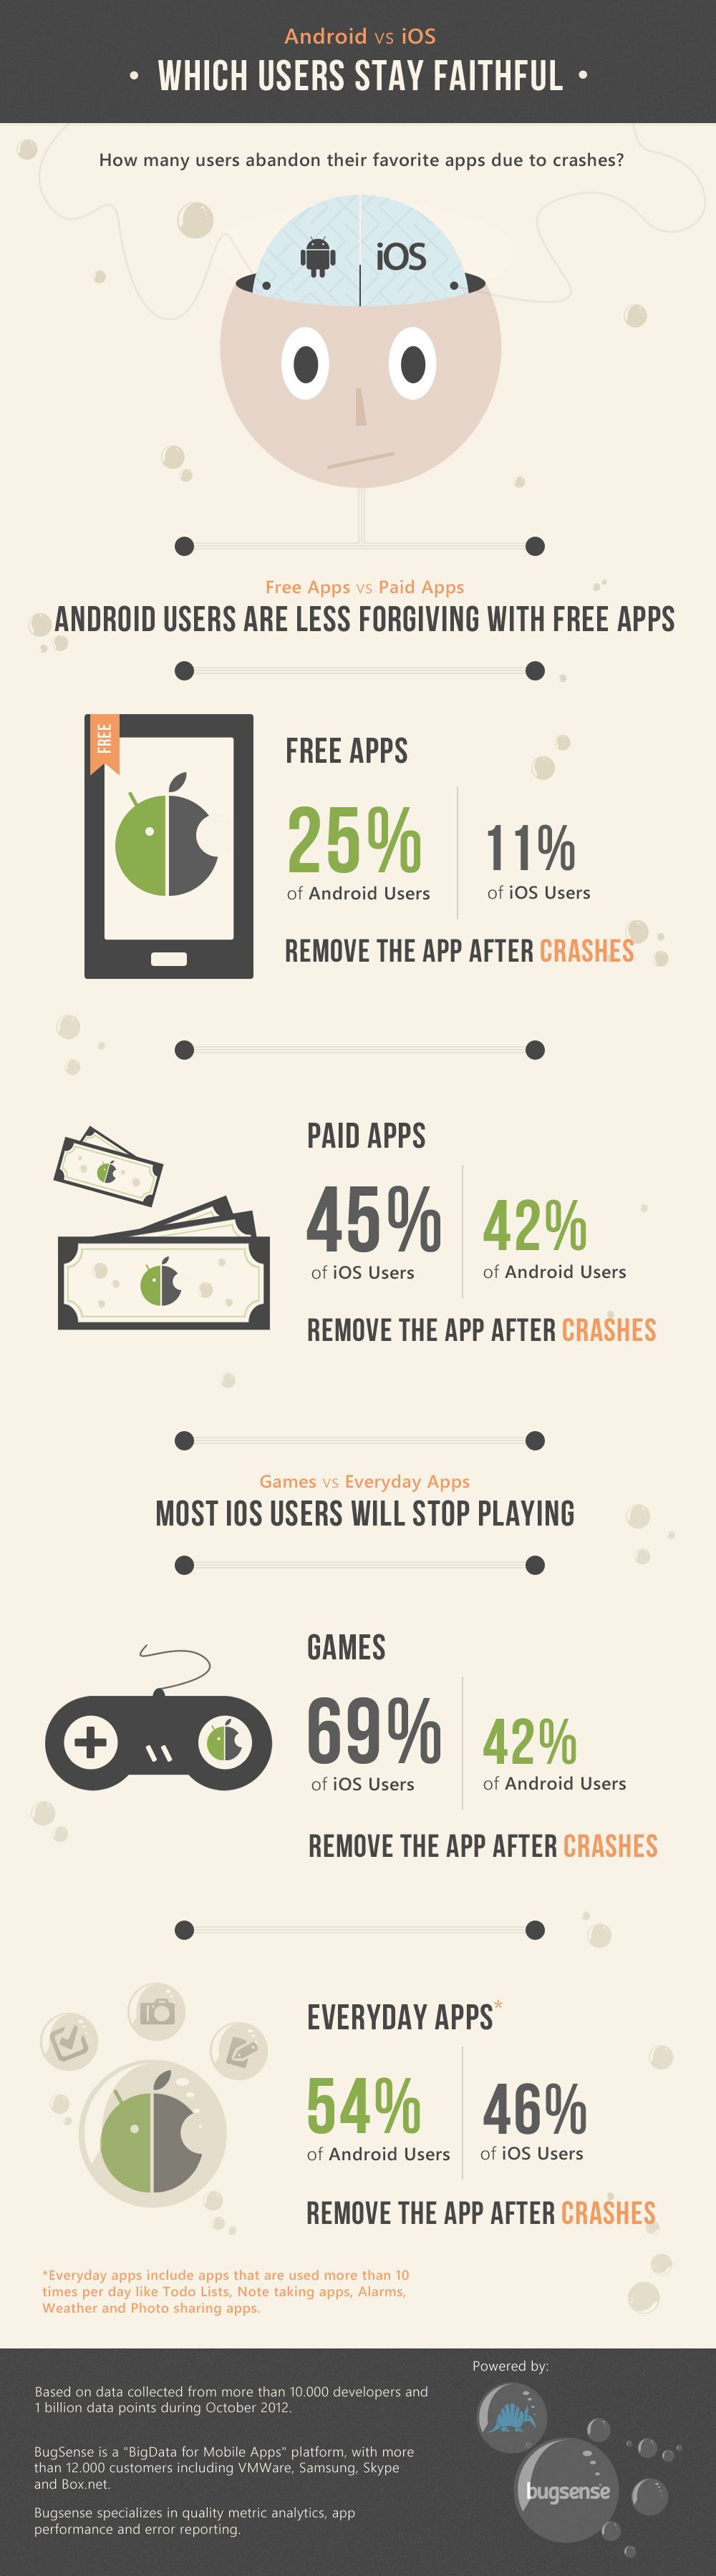 android-vs-ios-which-users-will-stop-using-your-app-after-it-crashes_50b27d381d709